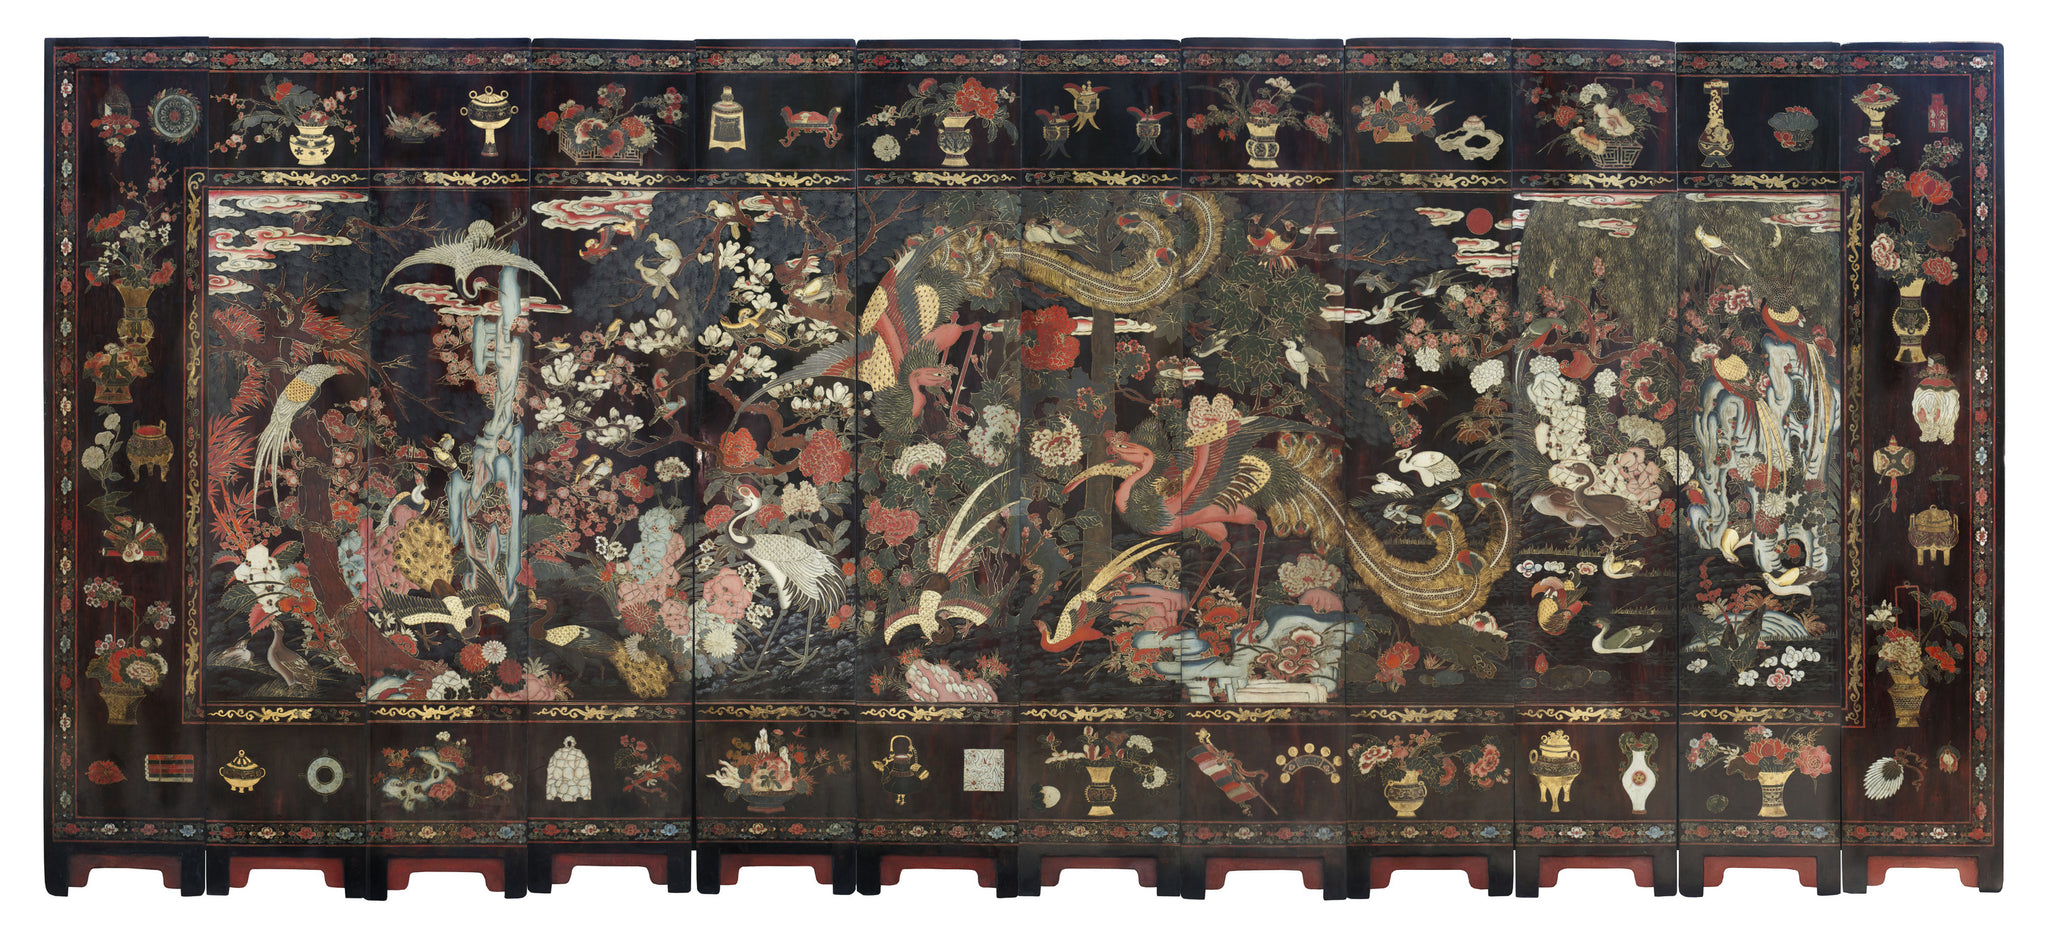 A RARE TWELVE PANEL POLYCHROME LACQUER SCREEN China,  Kangxi Period (1661-1722)  Early 18th Century